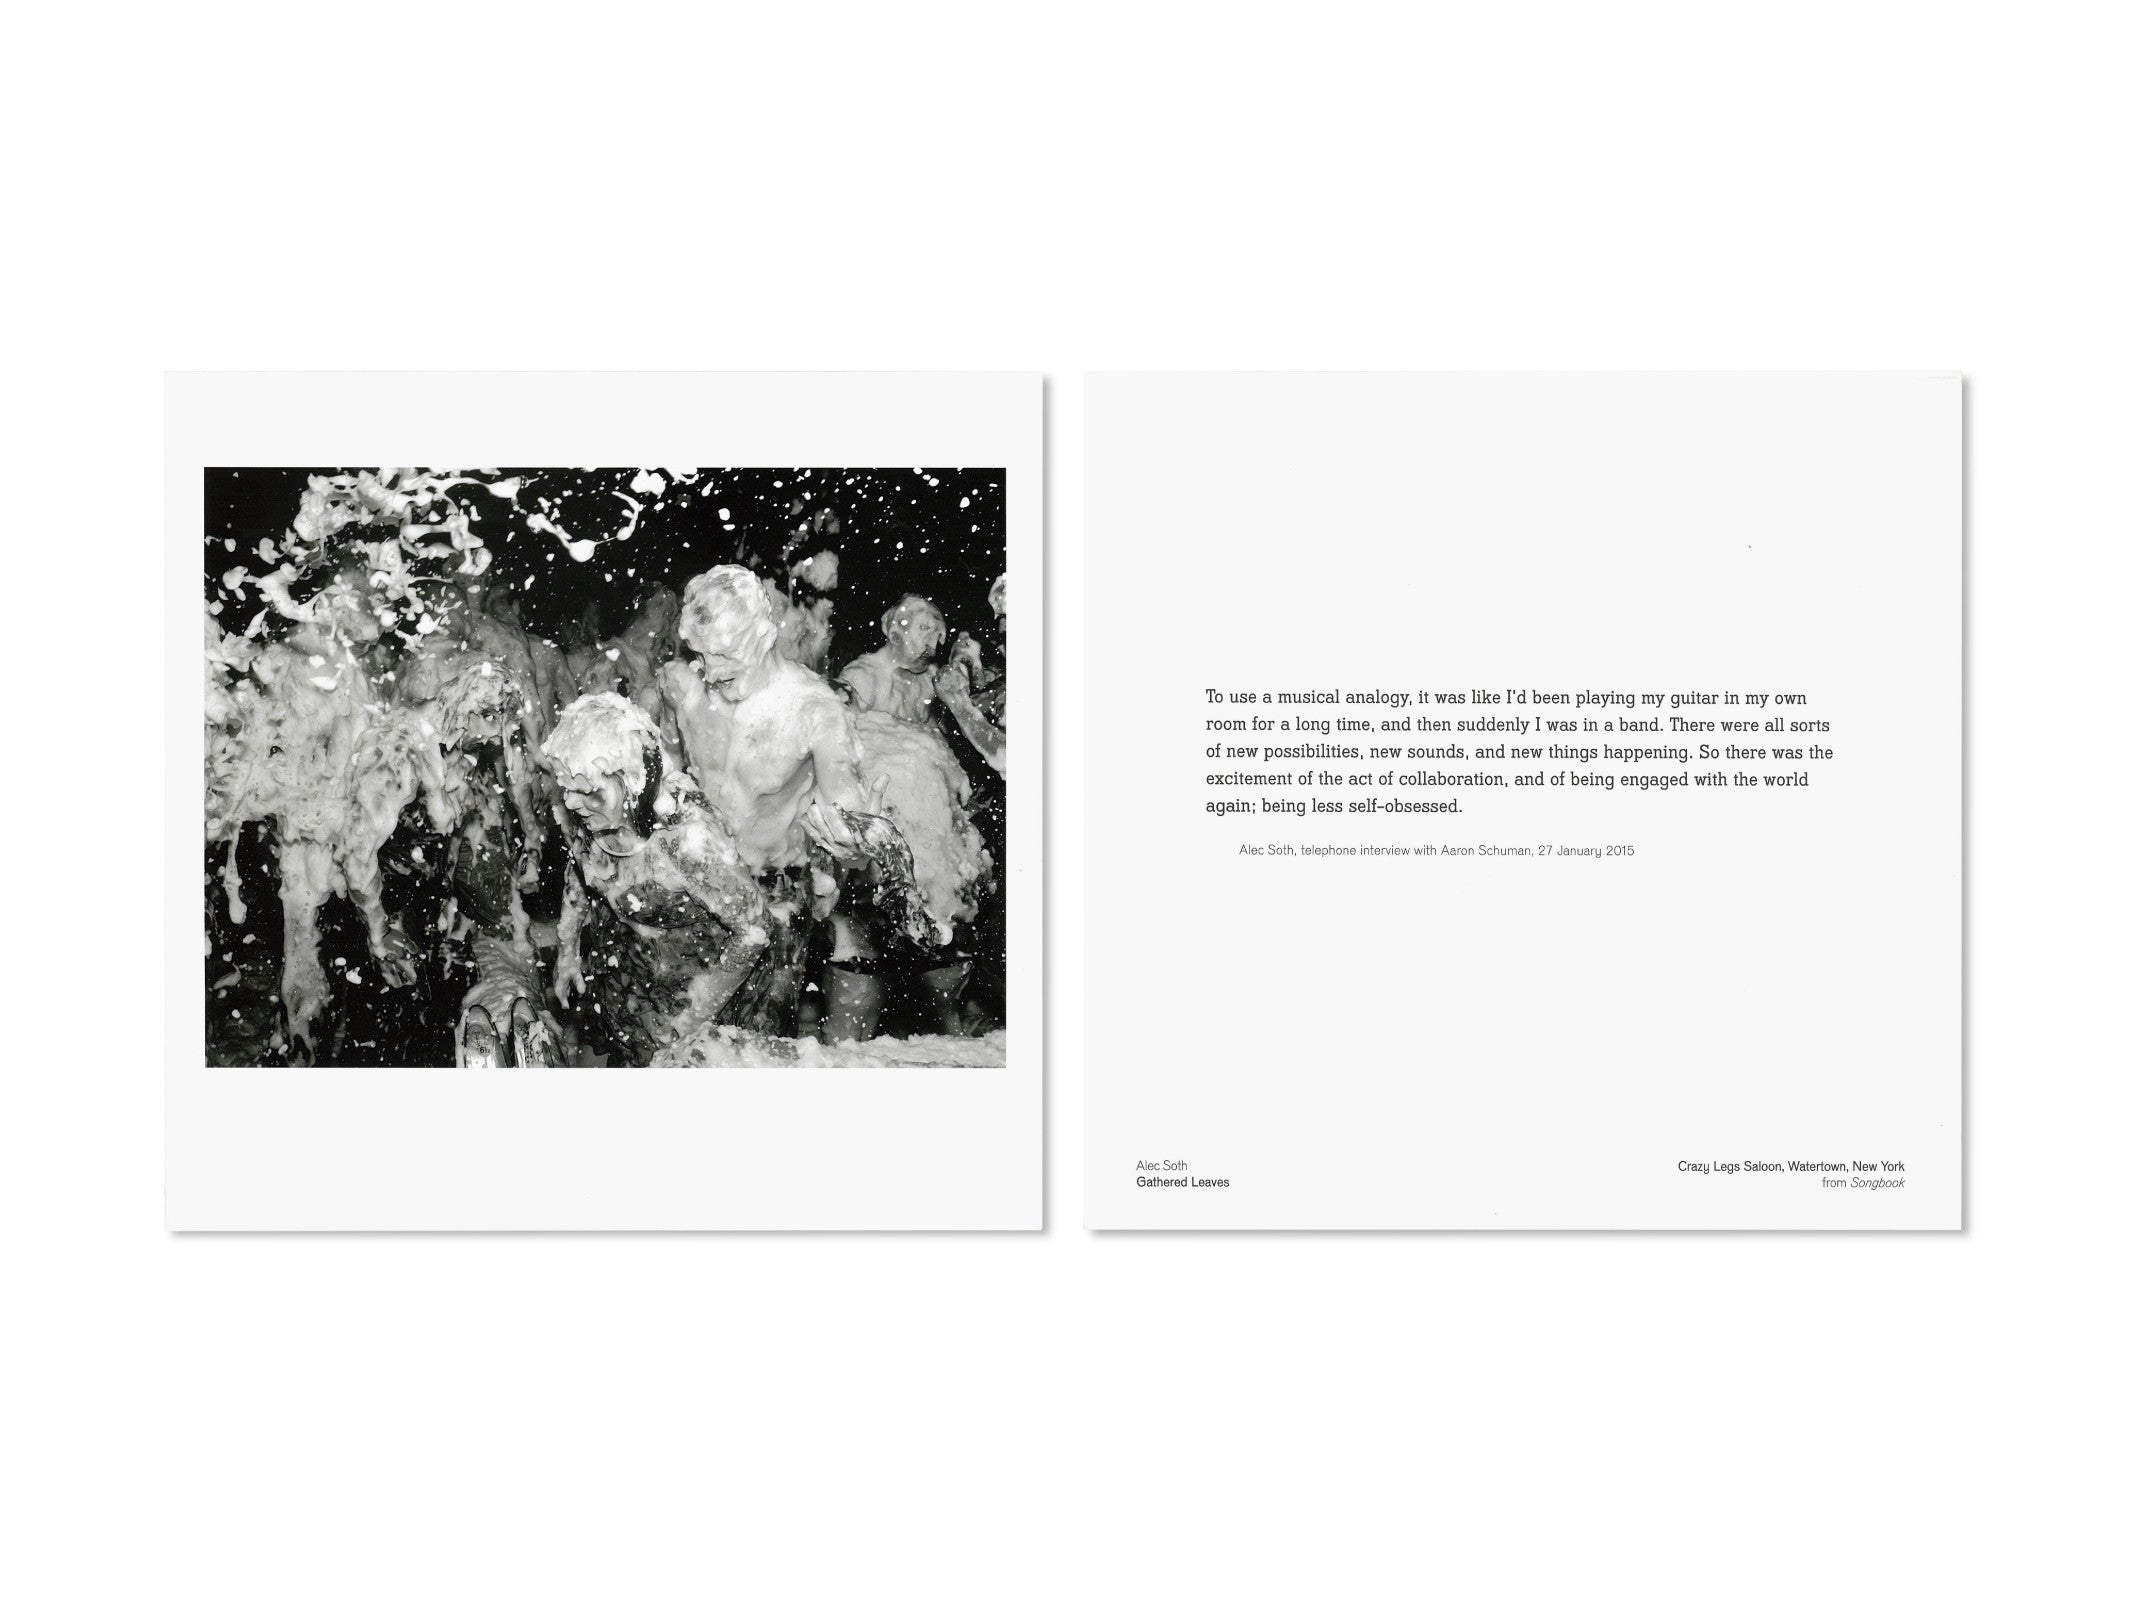 GATHERED LEAVES by Alec Soth